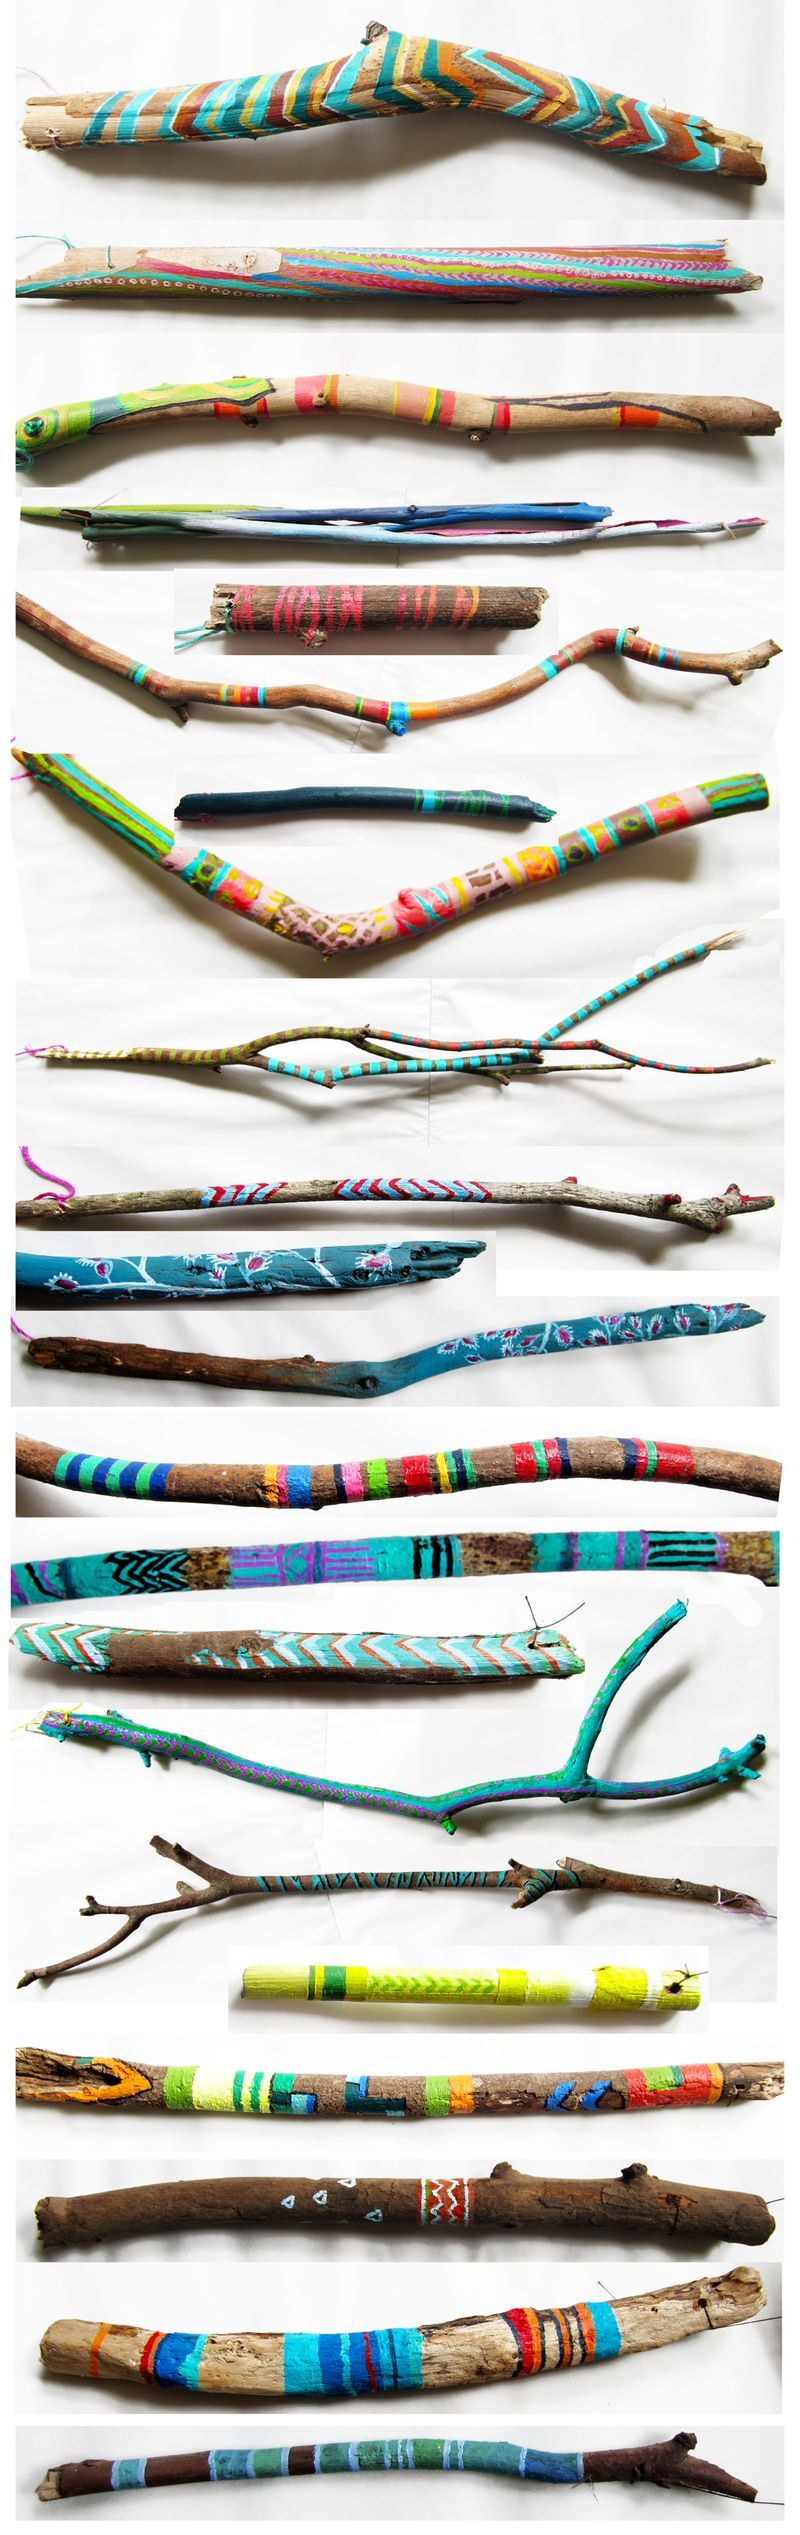 Painted sticks. Cute idea for kids craft